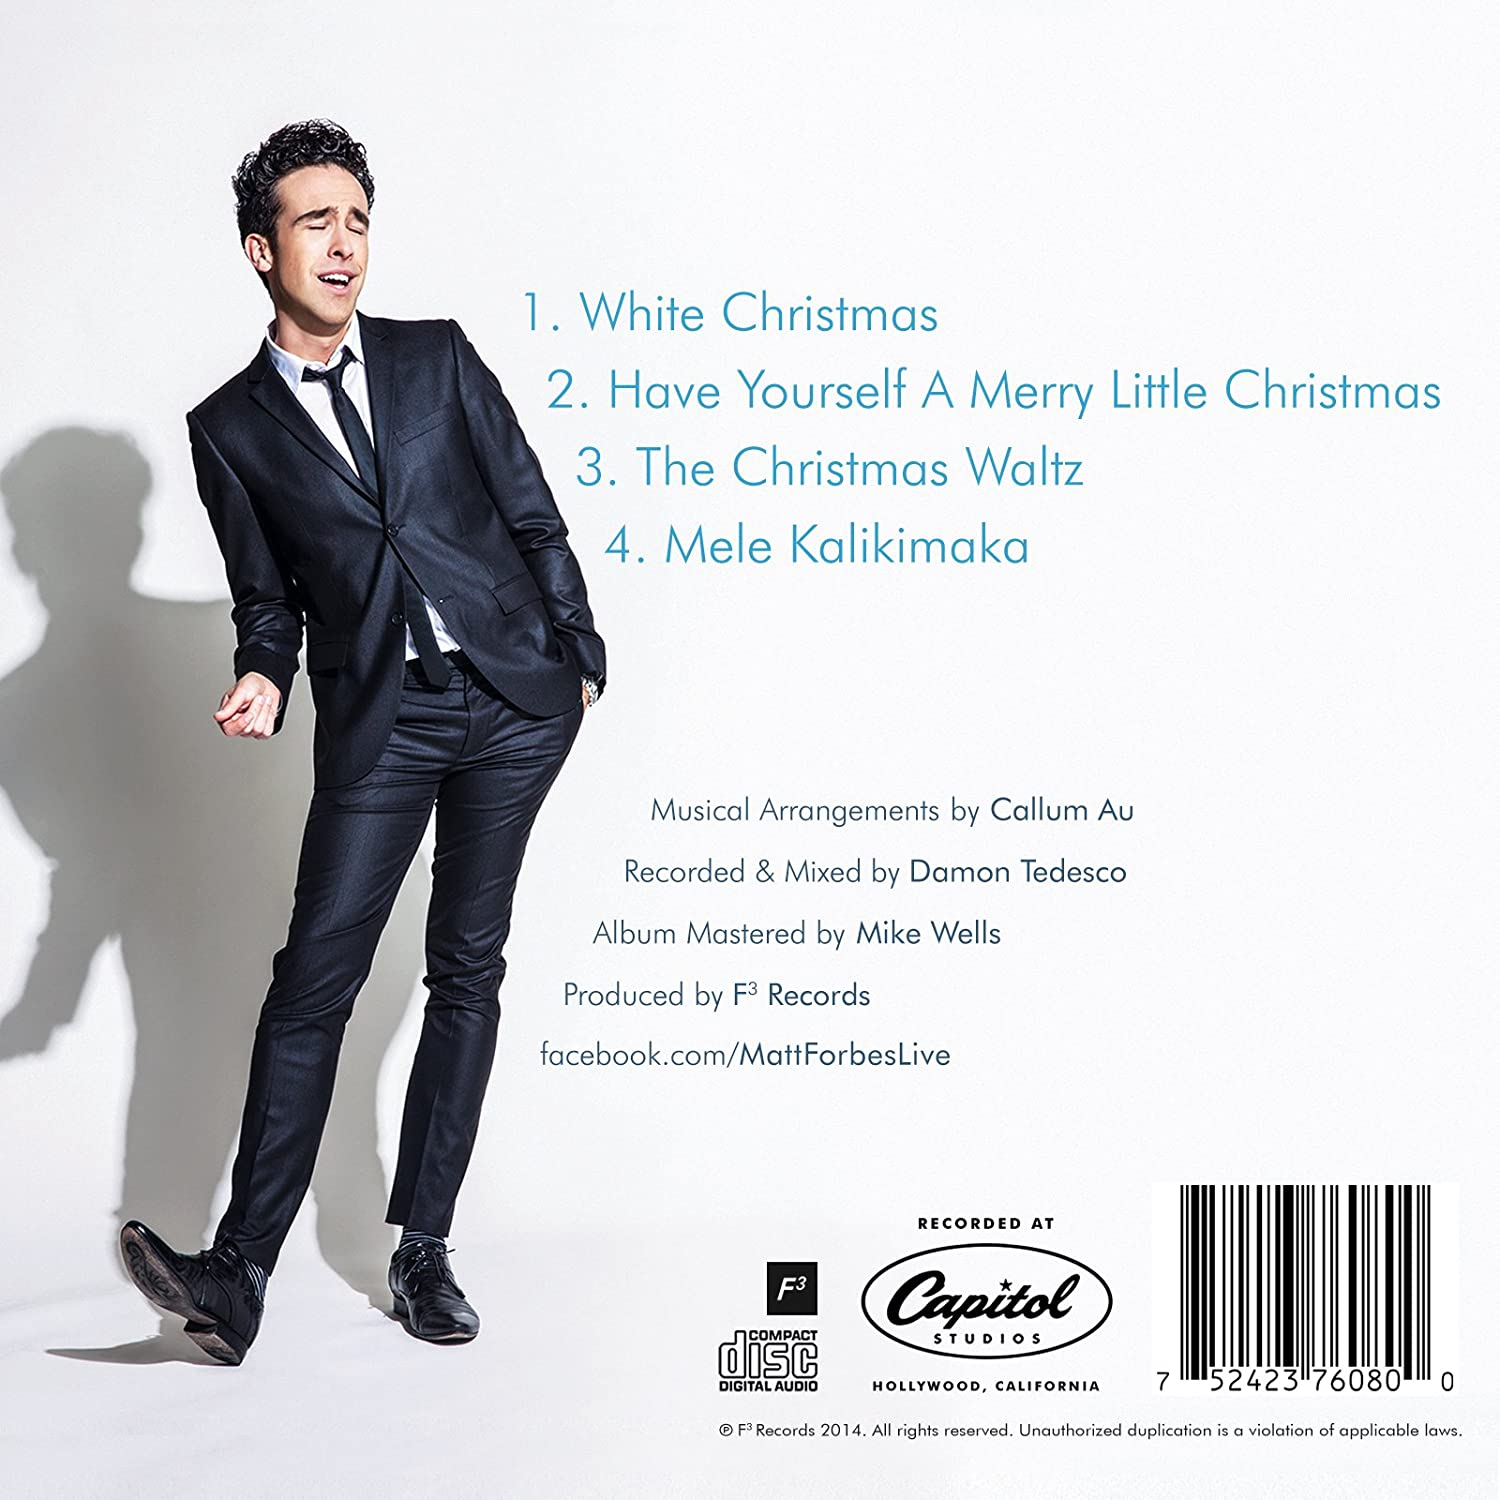 Matt Forbes - The Twelve Minutes Of Christmas - Amazon.com Music